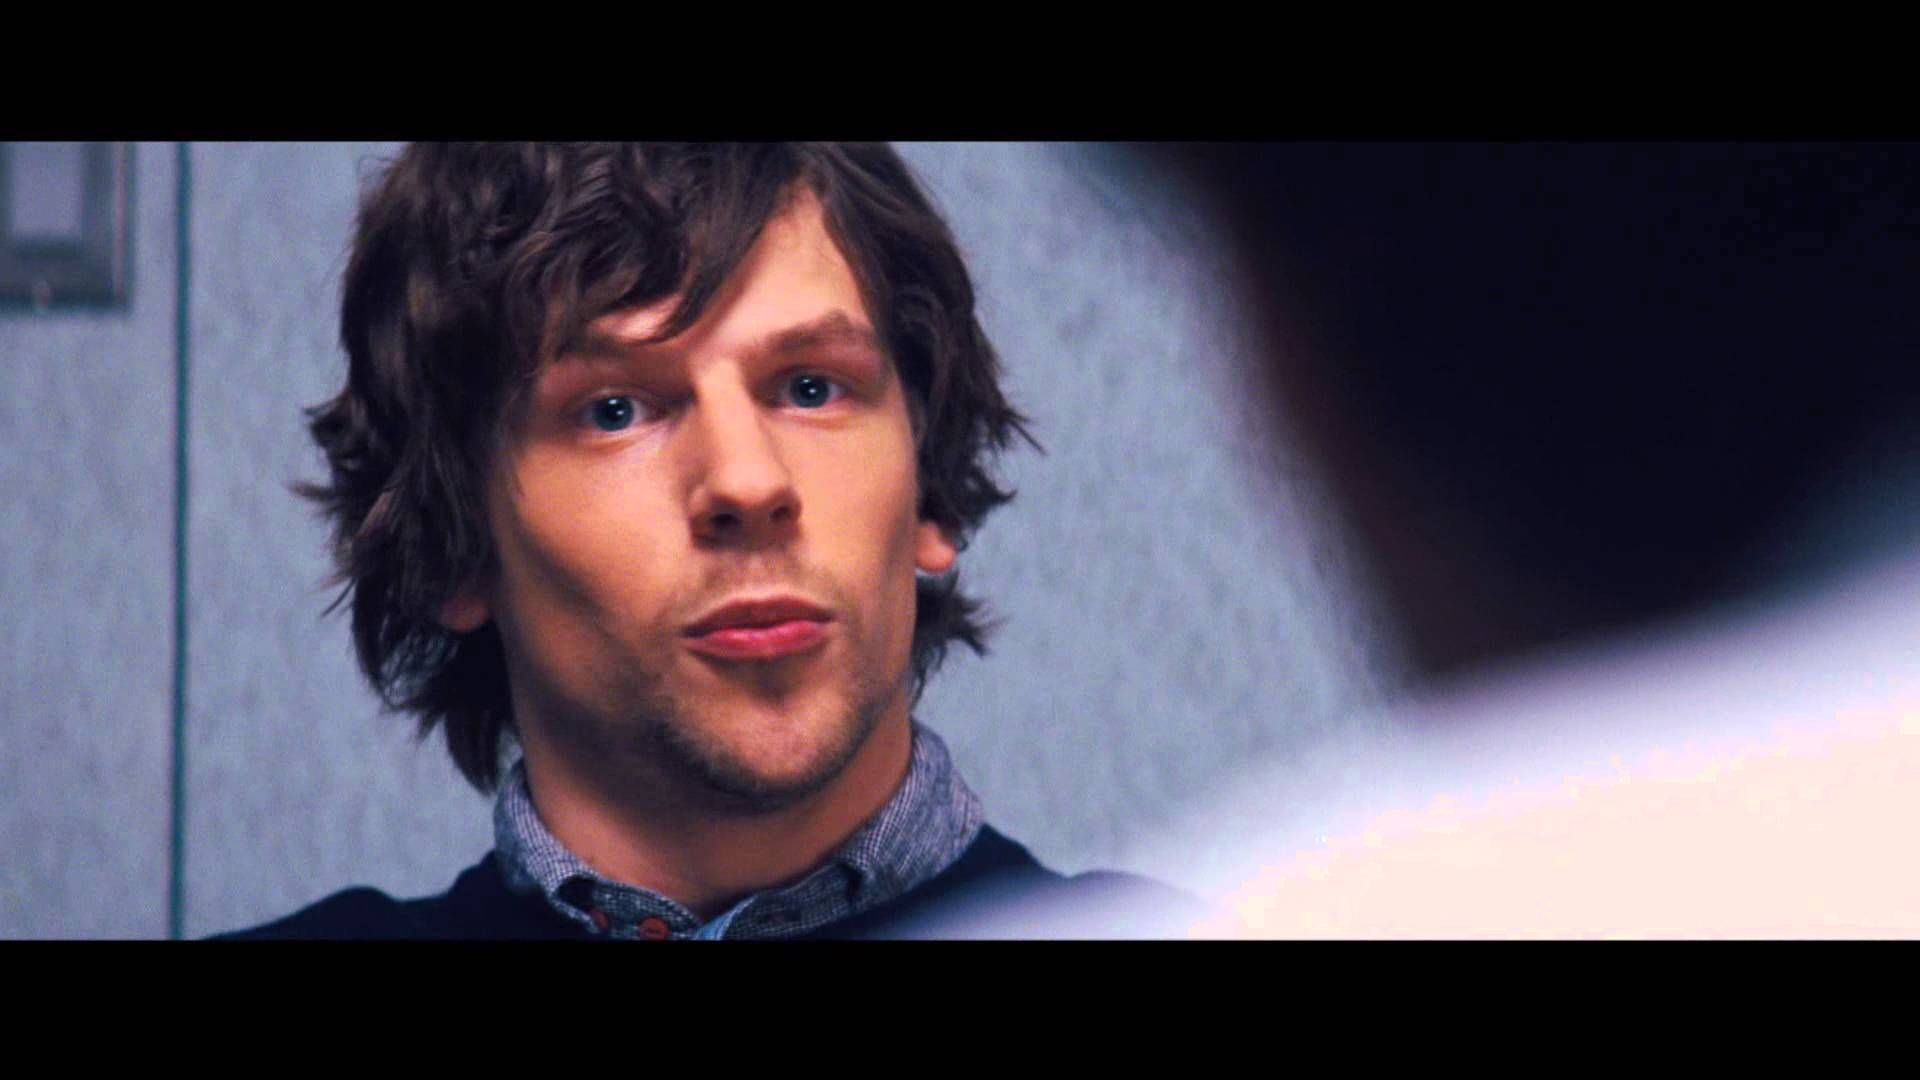 Jesse Eisenberg Now You See Me wallpaper.